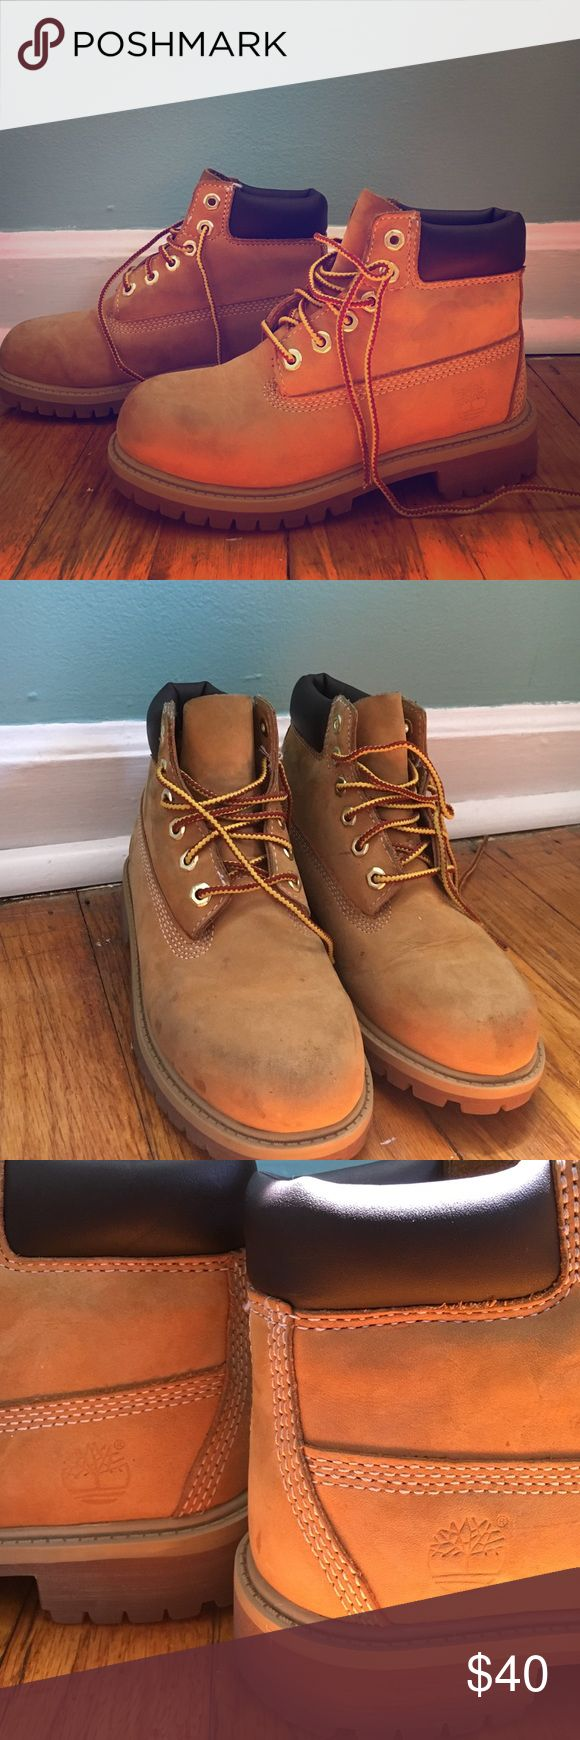 Youth Timberland Boots! Youth Timberland Boots! ✅In good condition ➖Sizing: US 13 Euro 31 ➖lots of life left minor imperfections (a few stains/spots on the shoe, should come off with suede cleaner) Timberland Shoes Ankle Boots & Booties